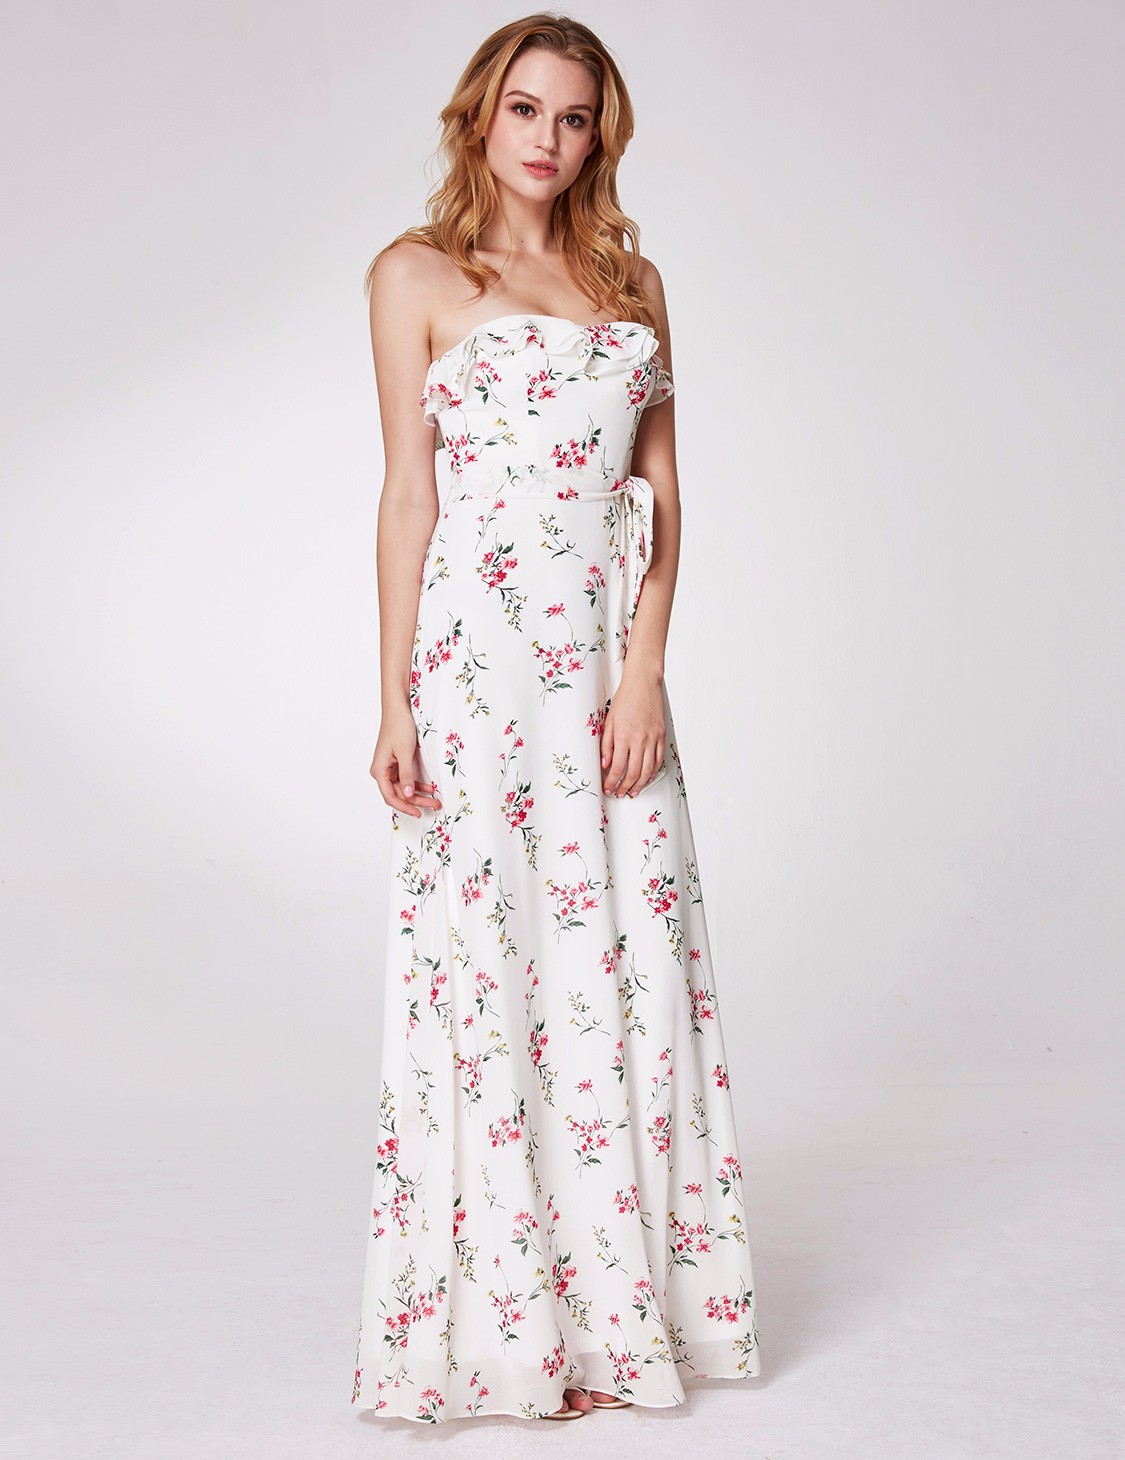 floral maxi dress for wedding pretty floral evening dresses summer strapless maxi 4111